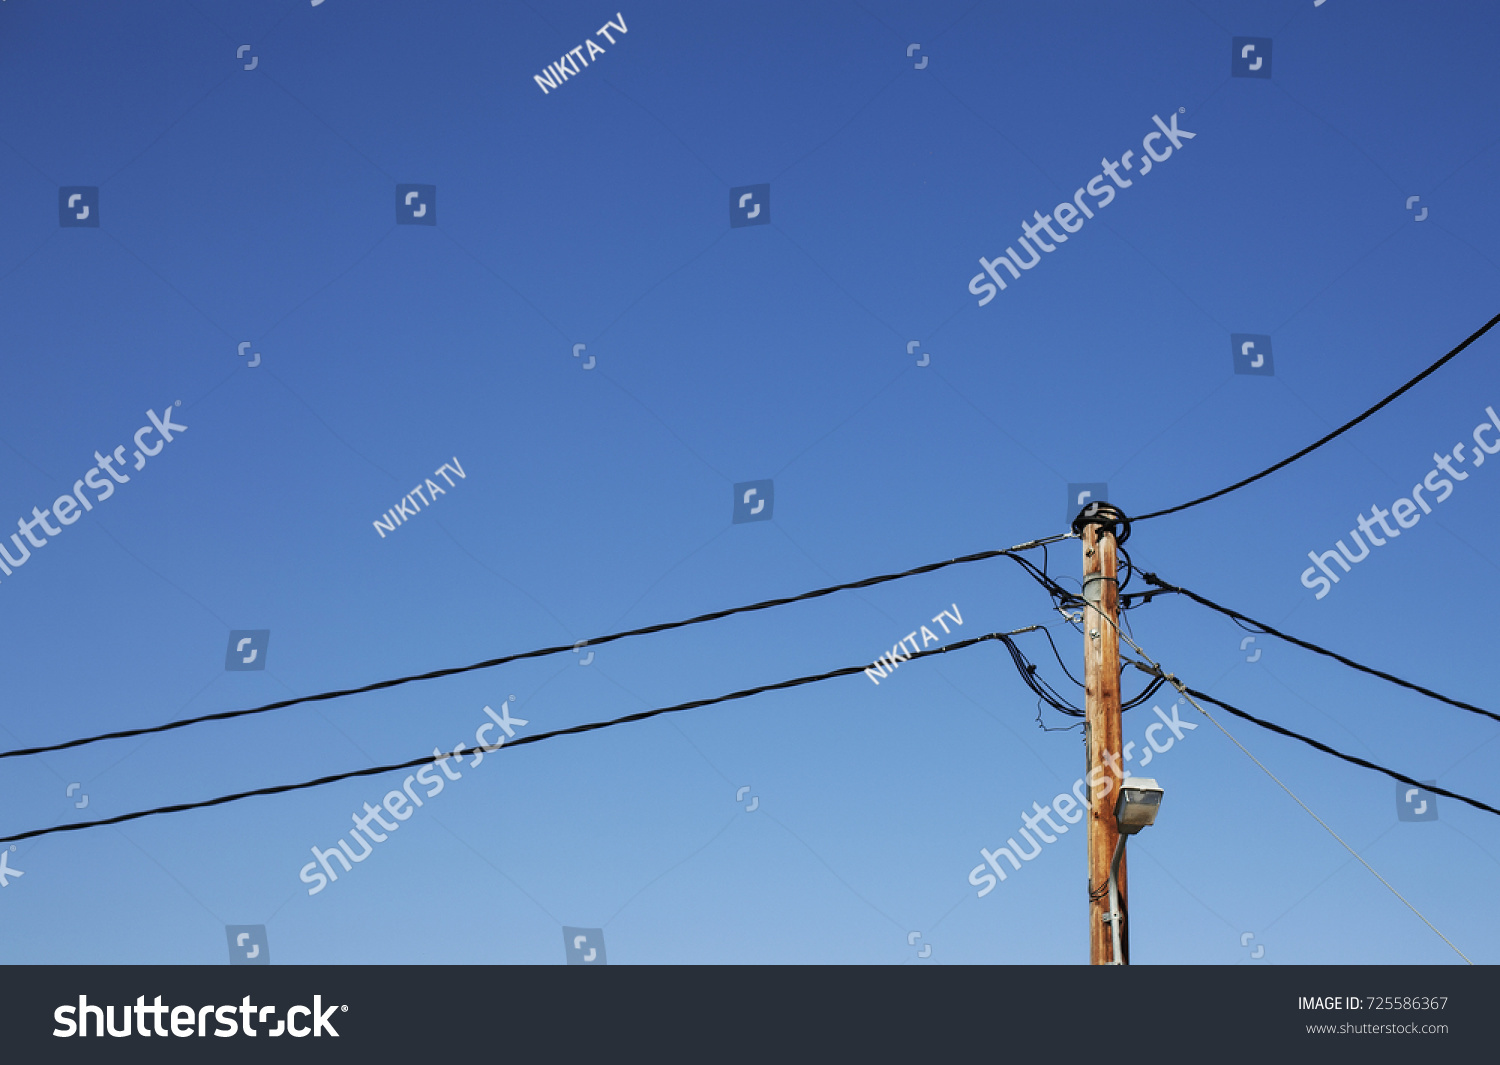 Electric Post Chaotic Wires Blue Sky Stock Photo Edit Now Wiring A Light Fixture Wire And With White Clouds